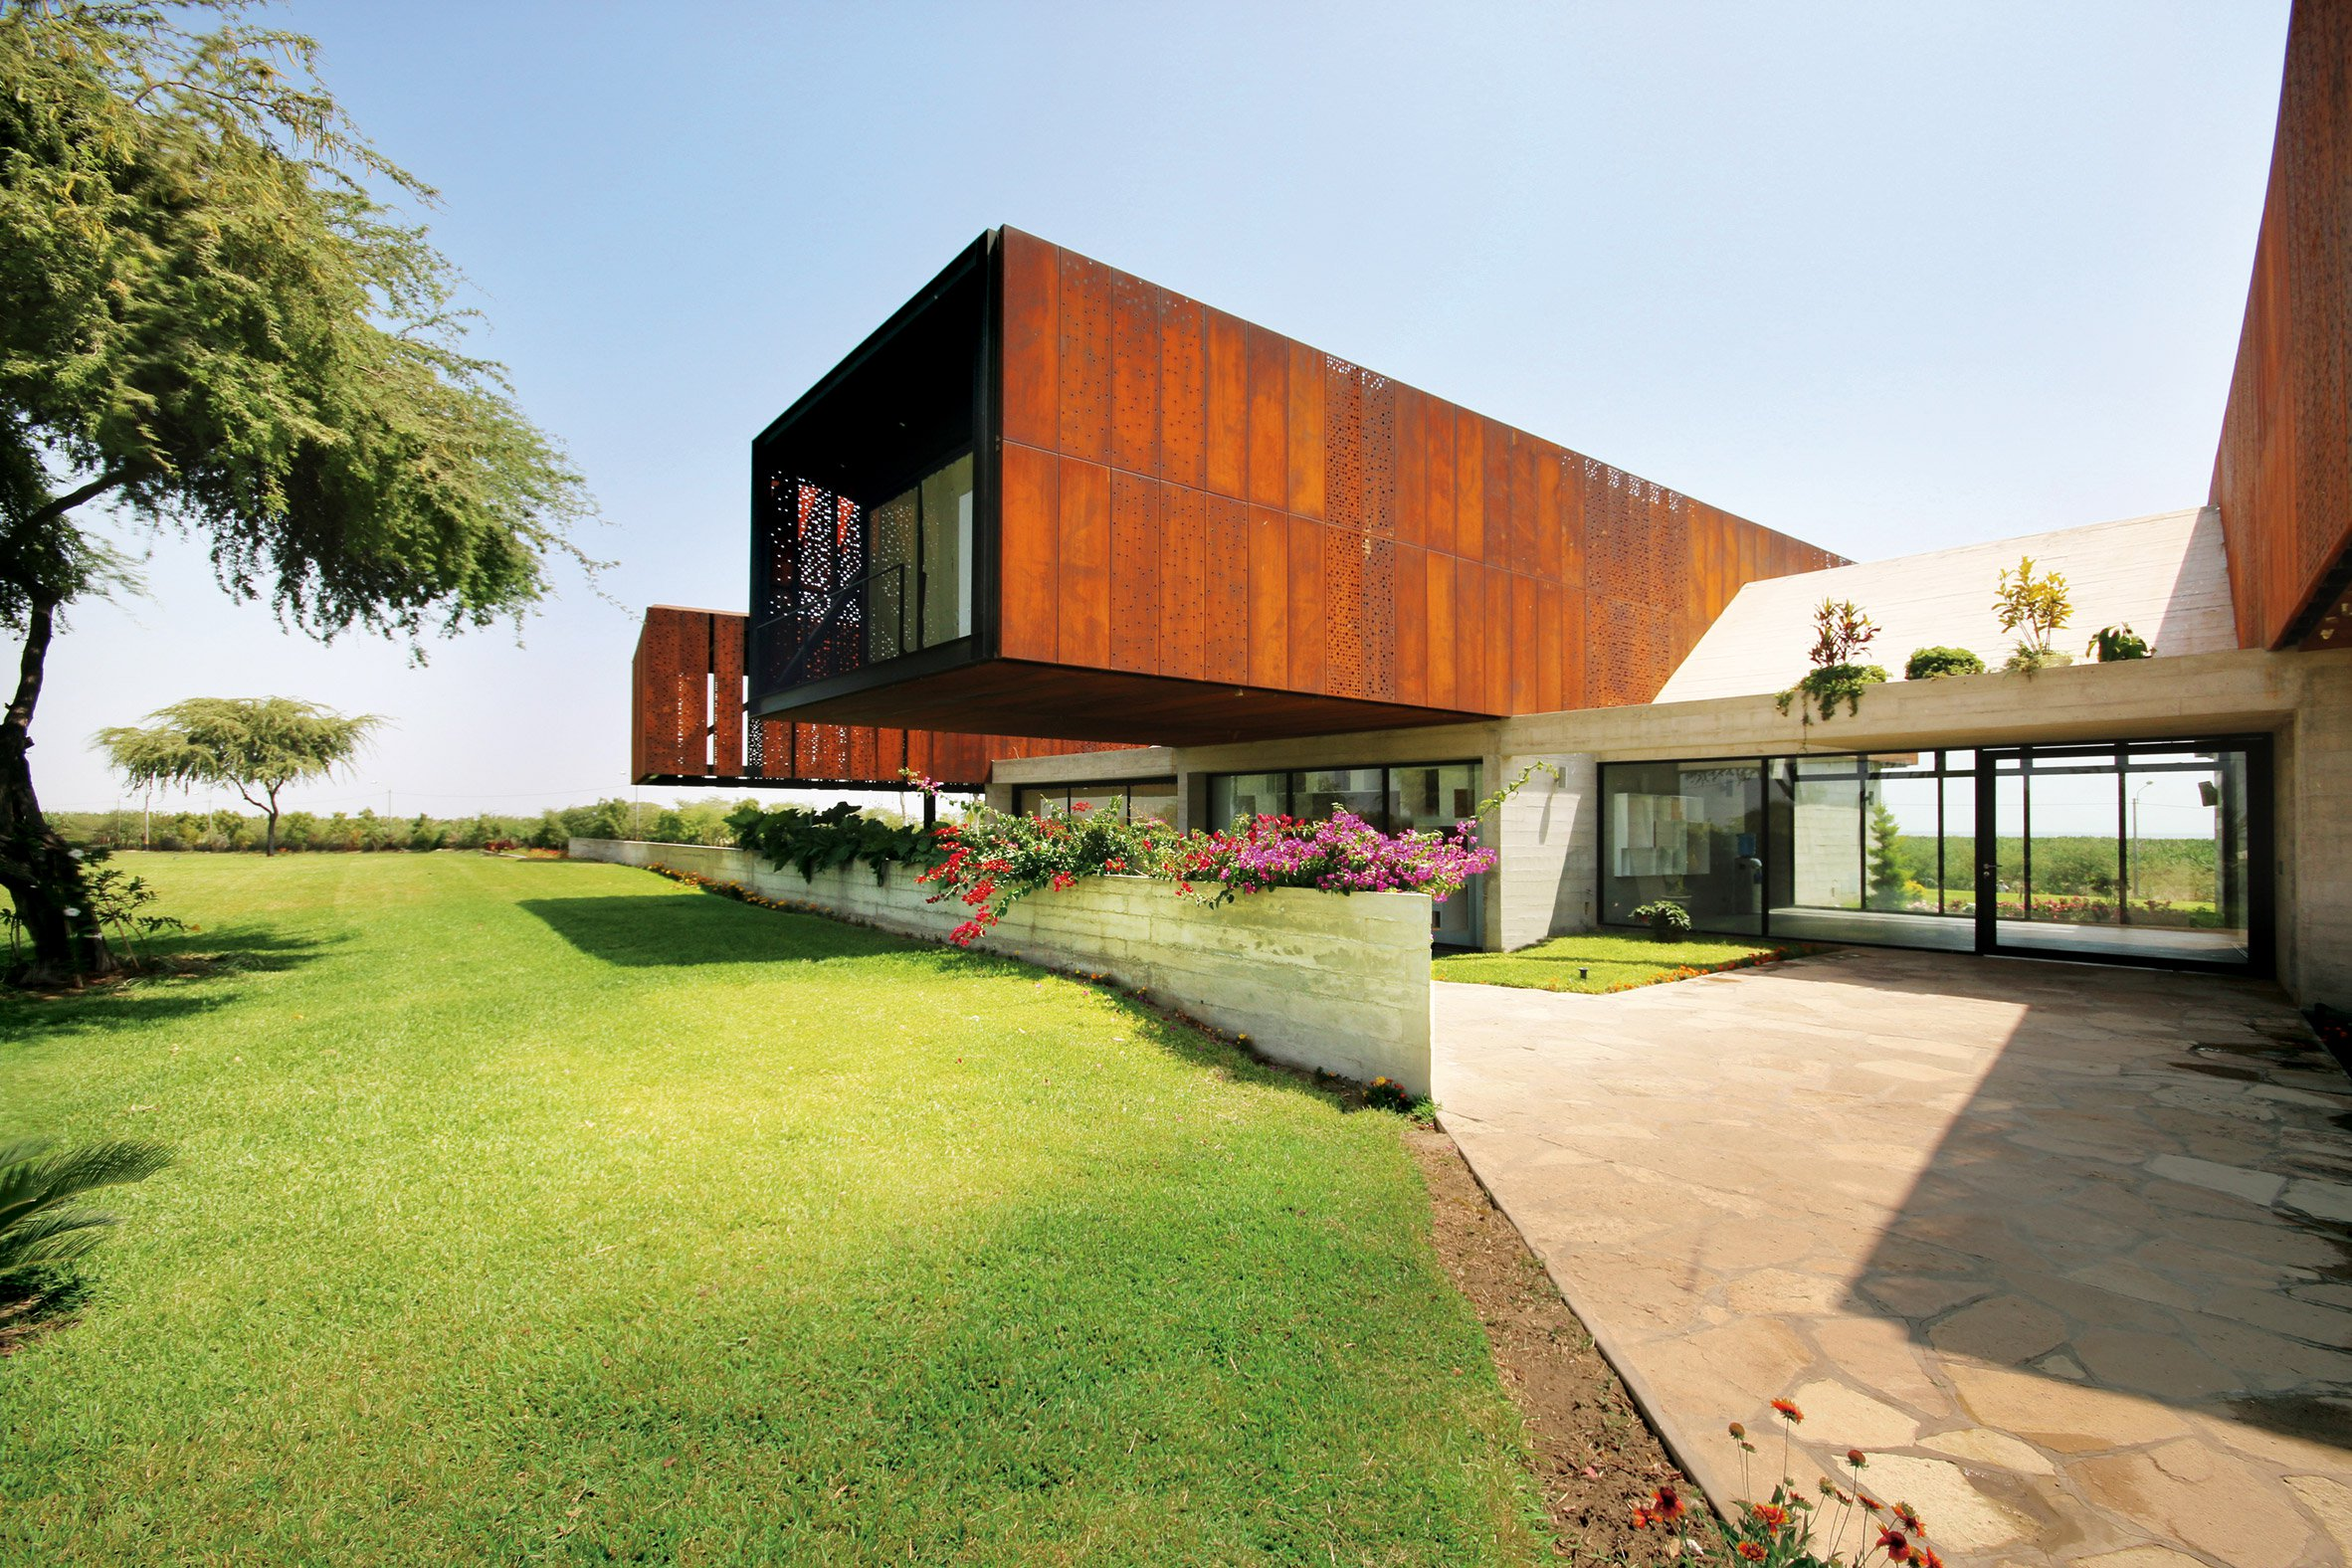 Cheng + Franco cantilevers trio of Corten-clad volumes from rural Peruvian house